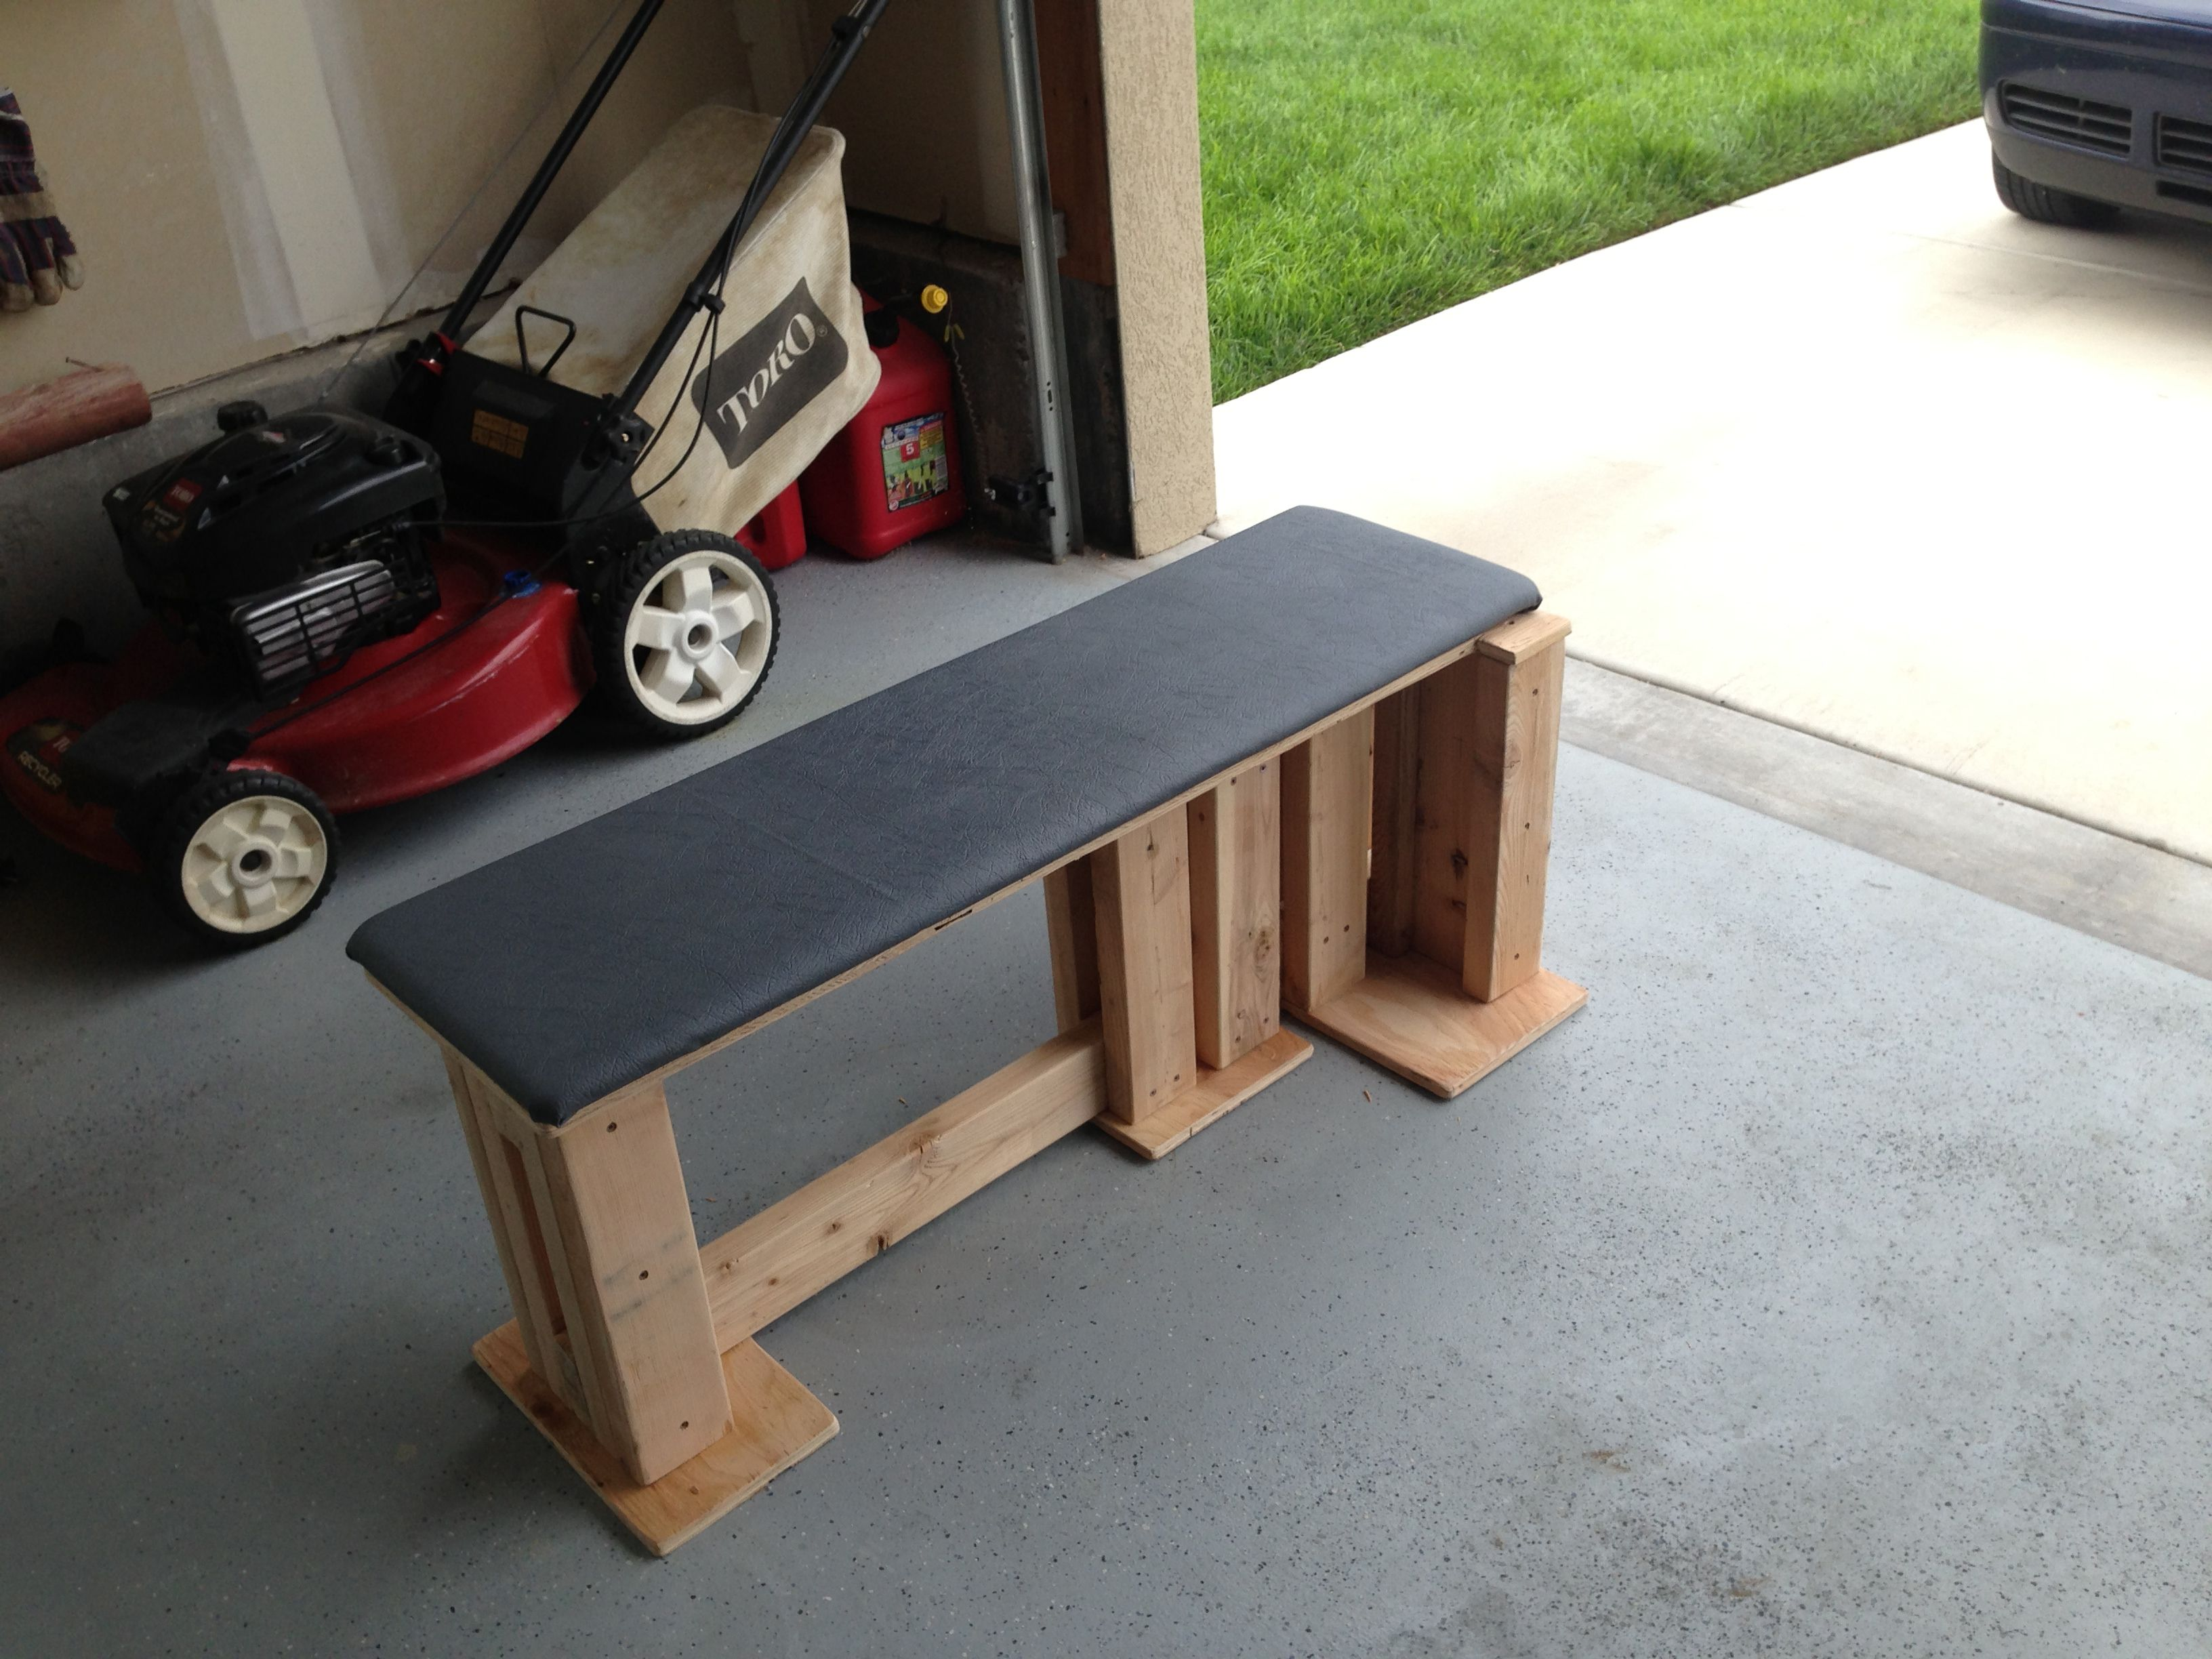 Strong Homemade Bench For Home Gym